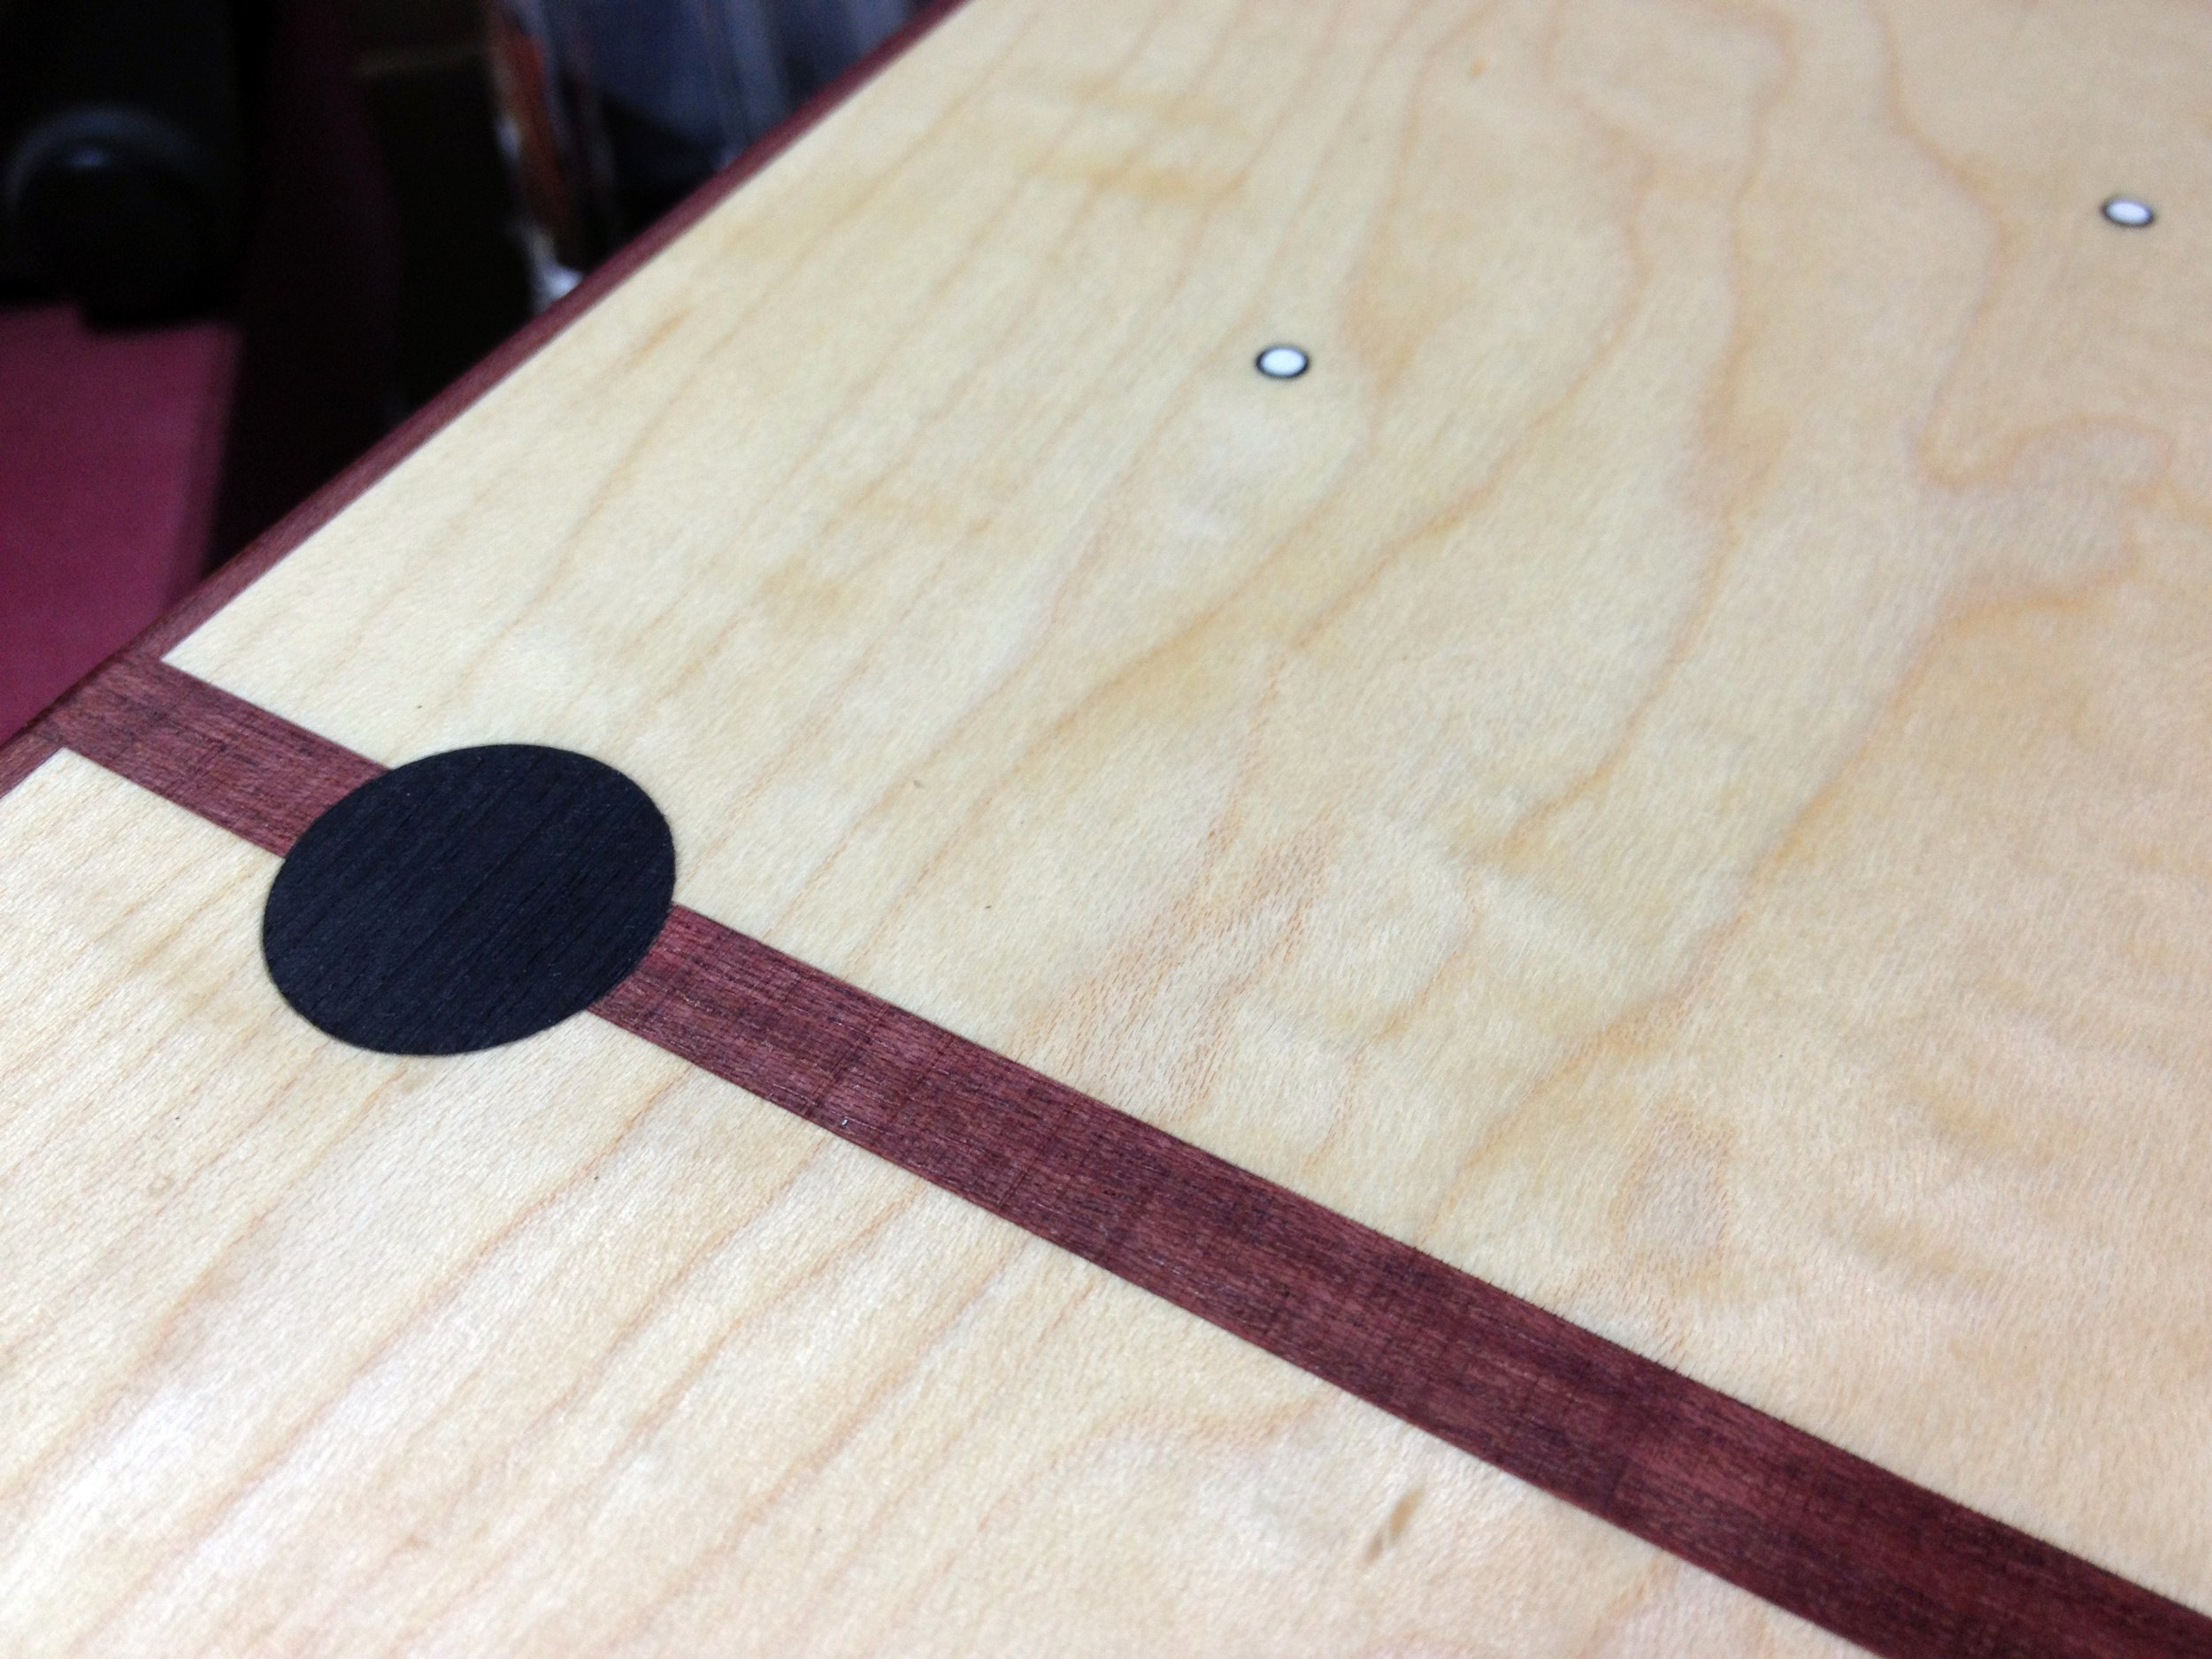 ​Clock #1: Major hour markers are ebony plugs and the off hours are white dots with a black ring.